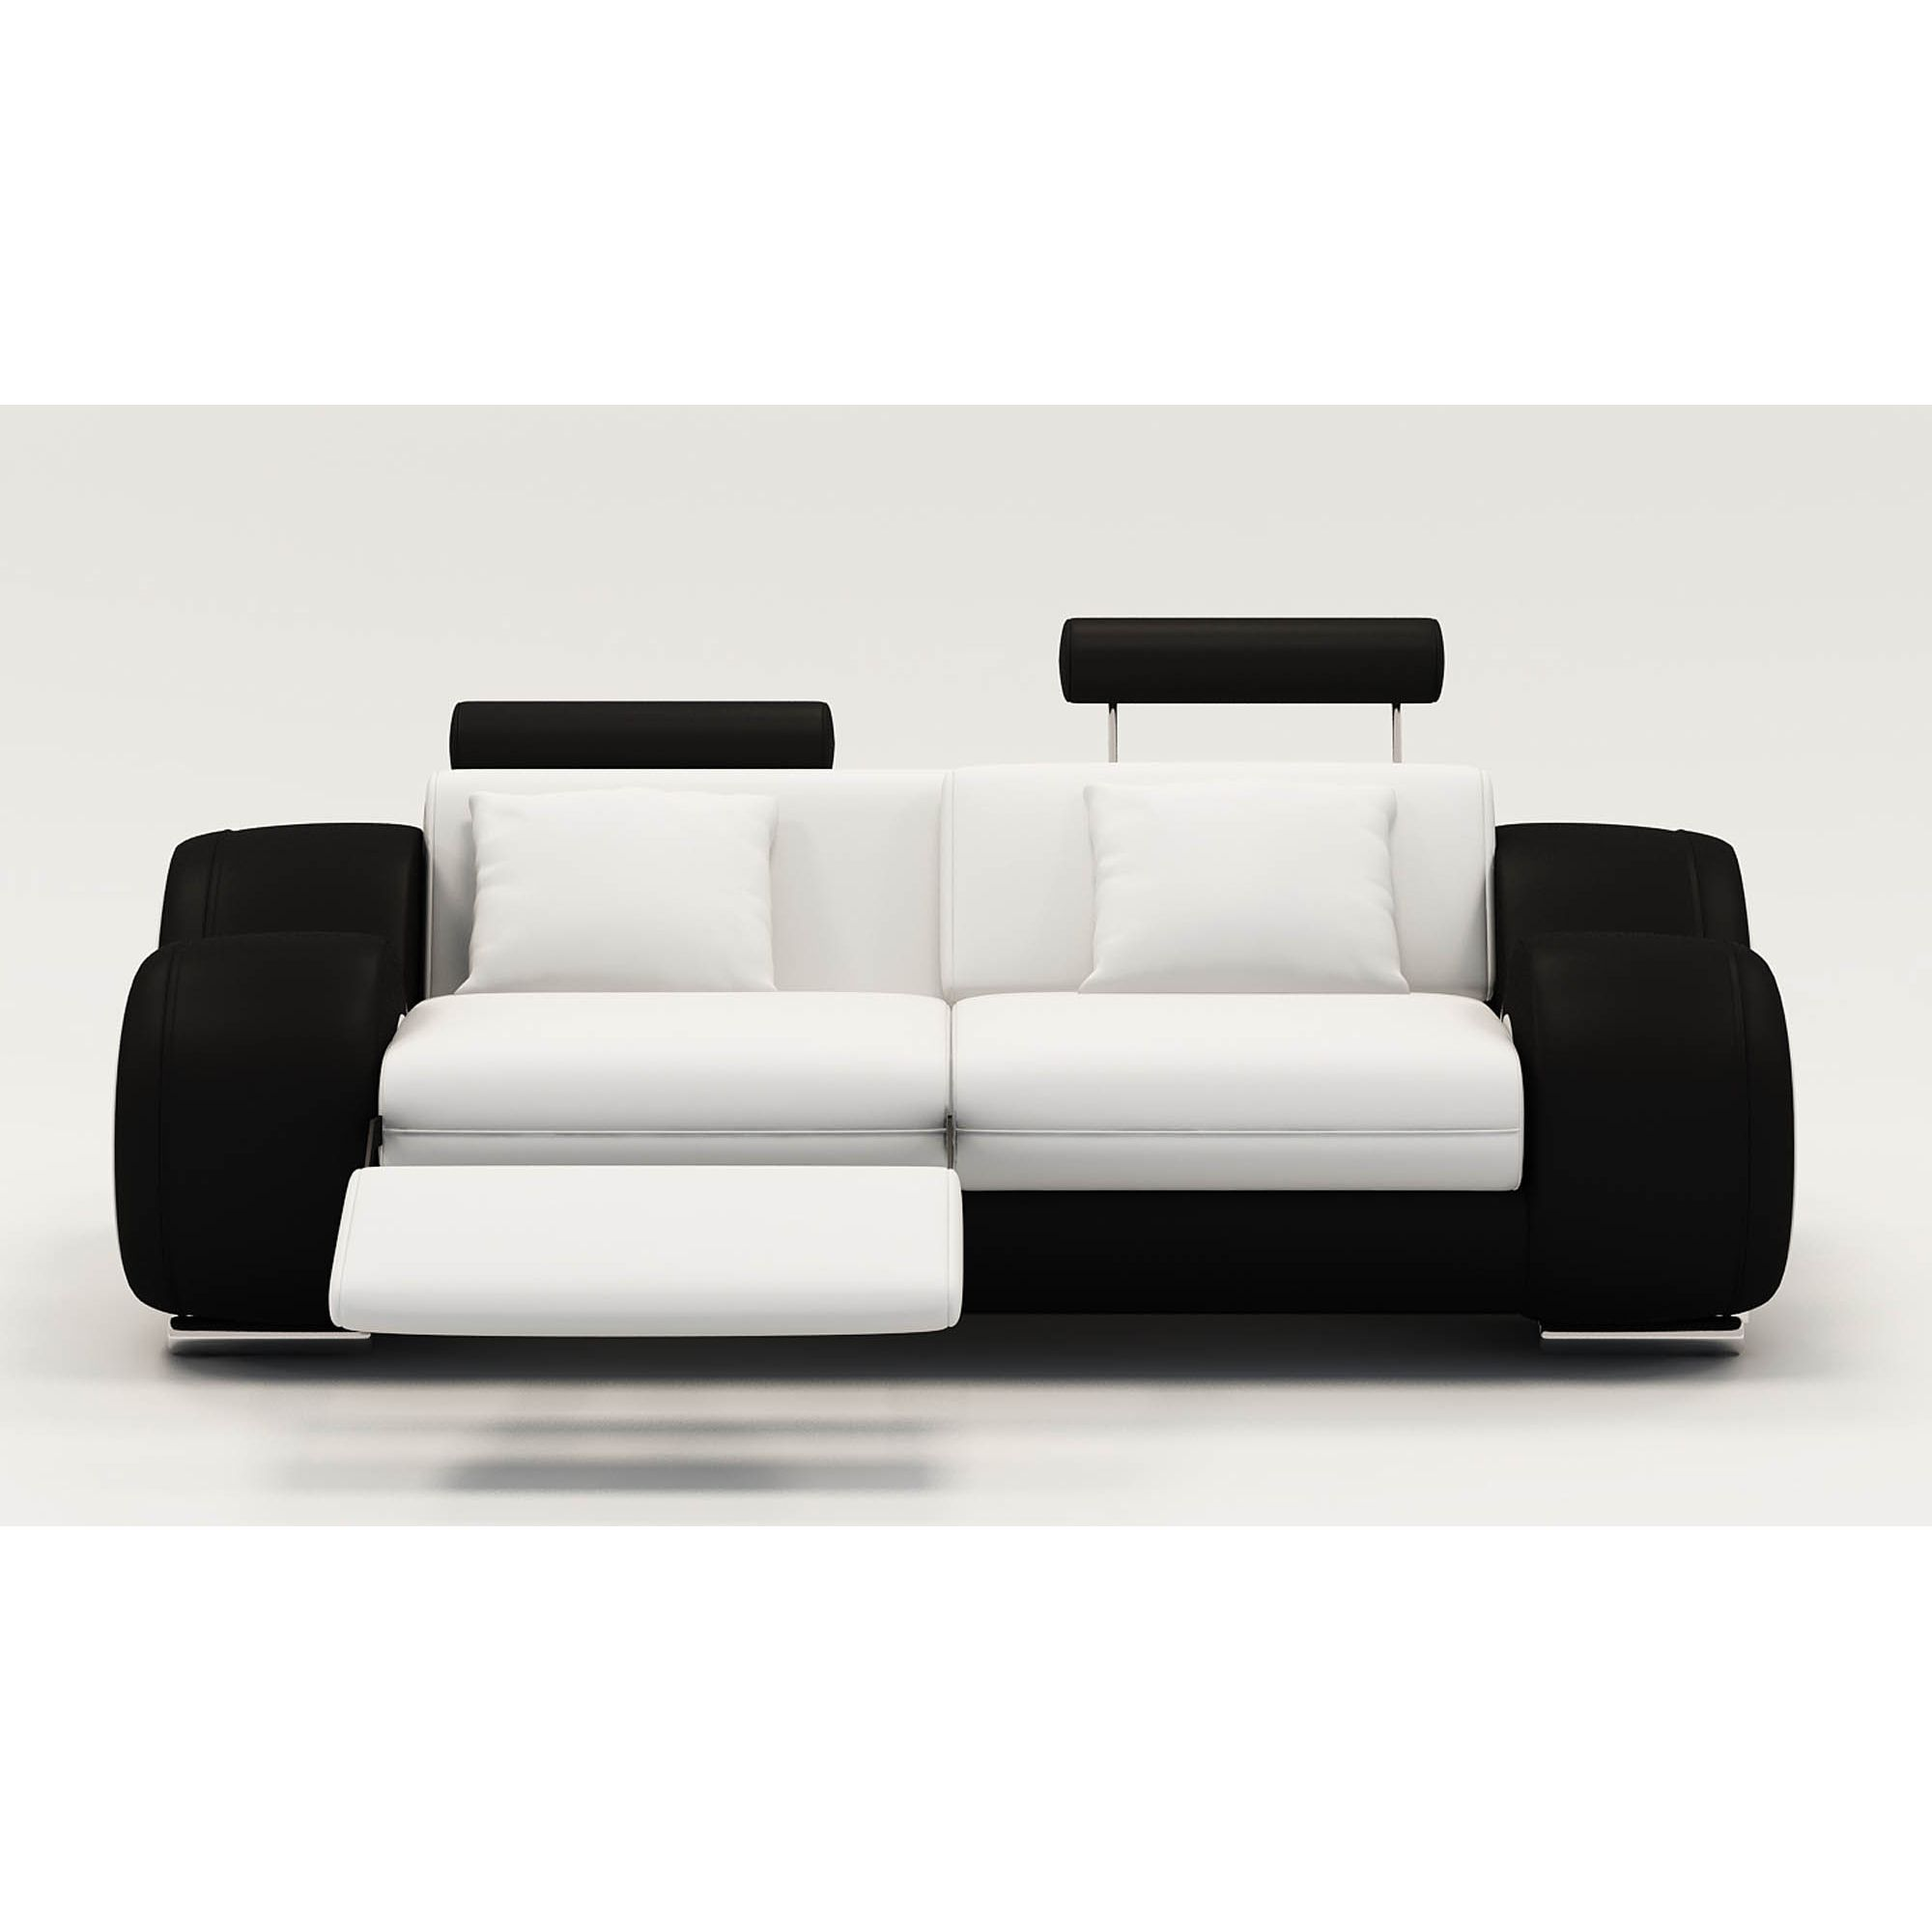 Deco in paris canape 2 places design relax oslo en cuir blanc et noir 2pl b - Canape design 2 places ...